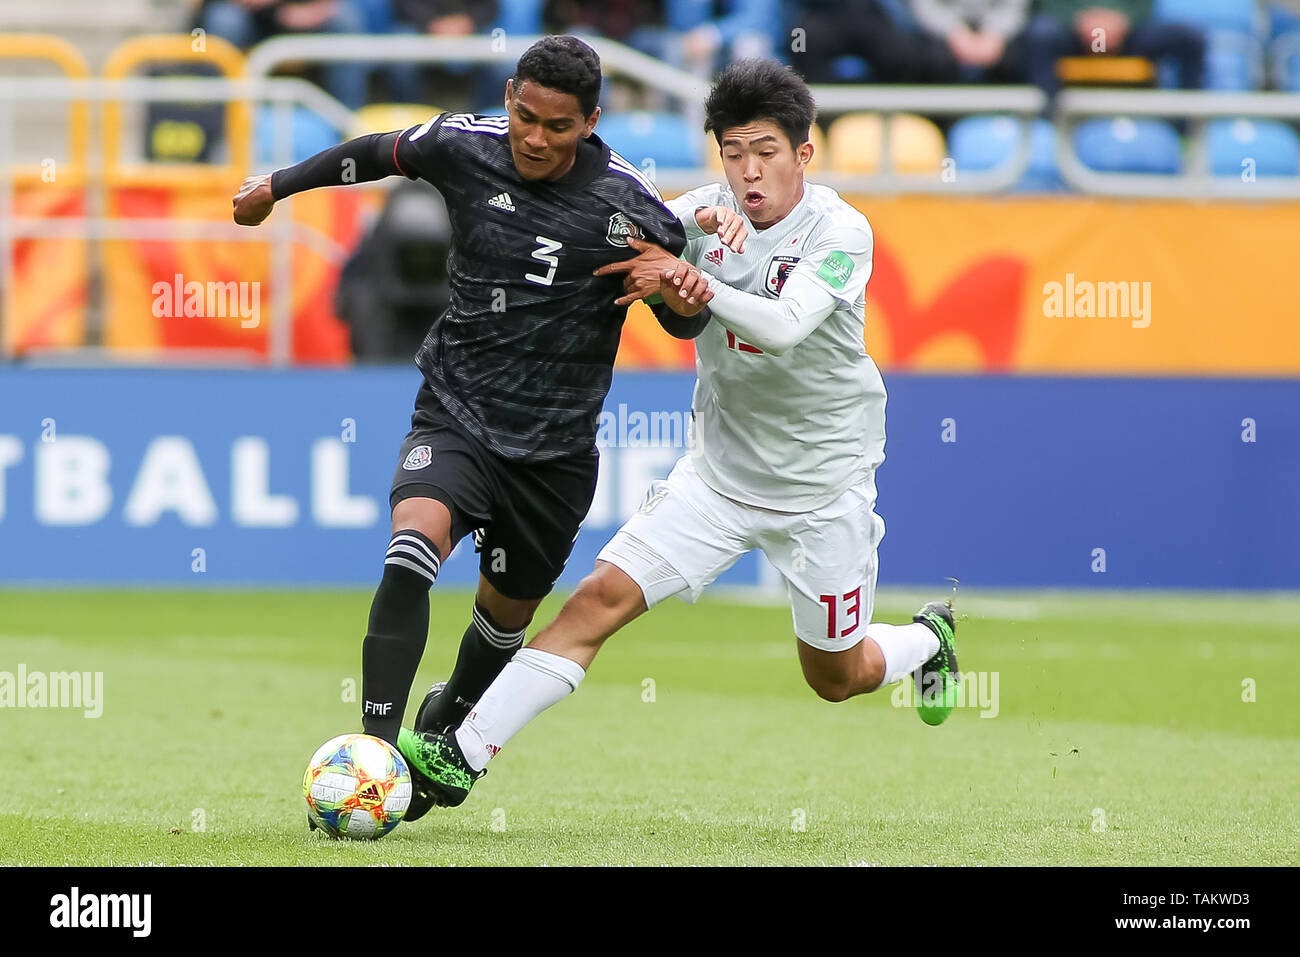 Gdynia Stadium, Gdynia, Poland - 26th May, 2019: Gilberto Sepulveda (L) from Mexico and Taisei Miyashiro (R) from Japan are seen in action during FIFA U-20 World Cup match between Mexico and Japan (GROUP B) in Gdynia. (Final score; Mexico 0:3 Japan) - Stock Image